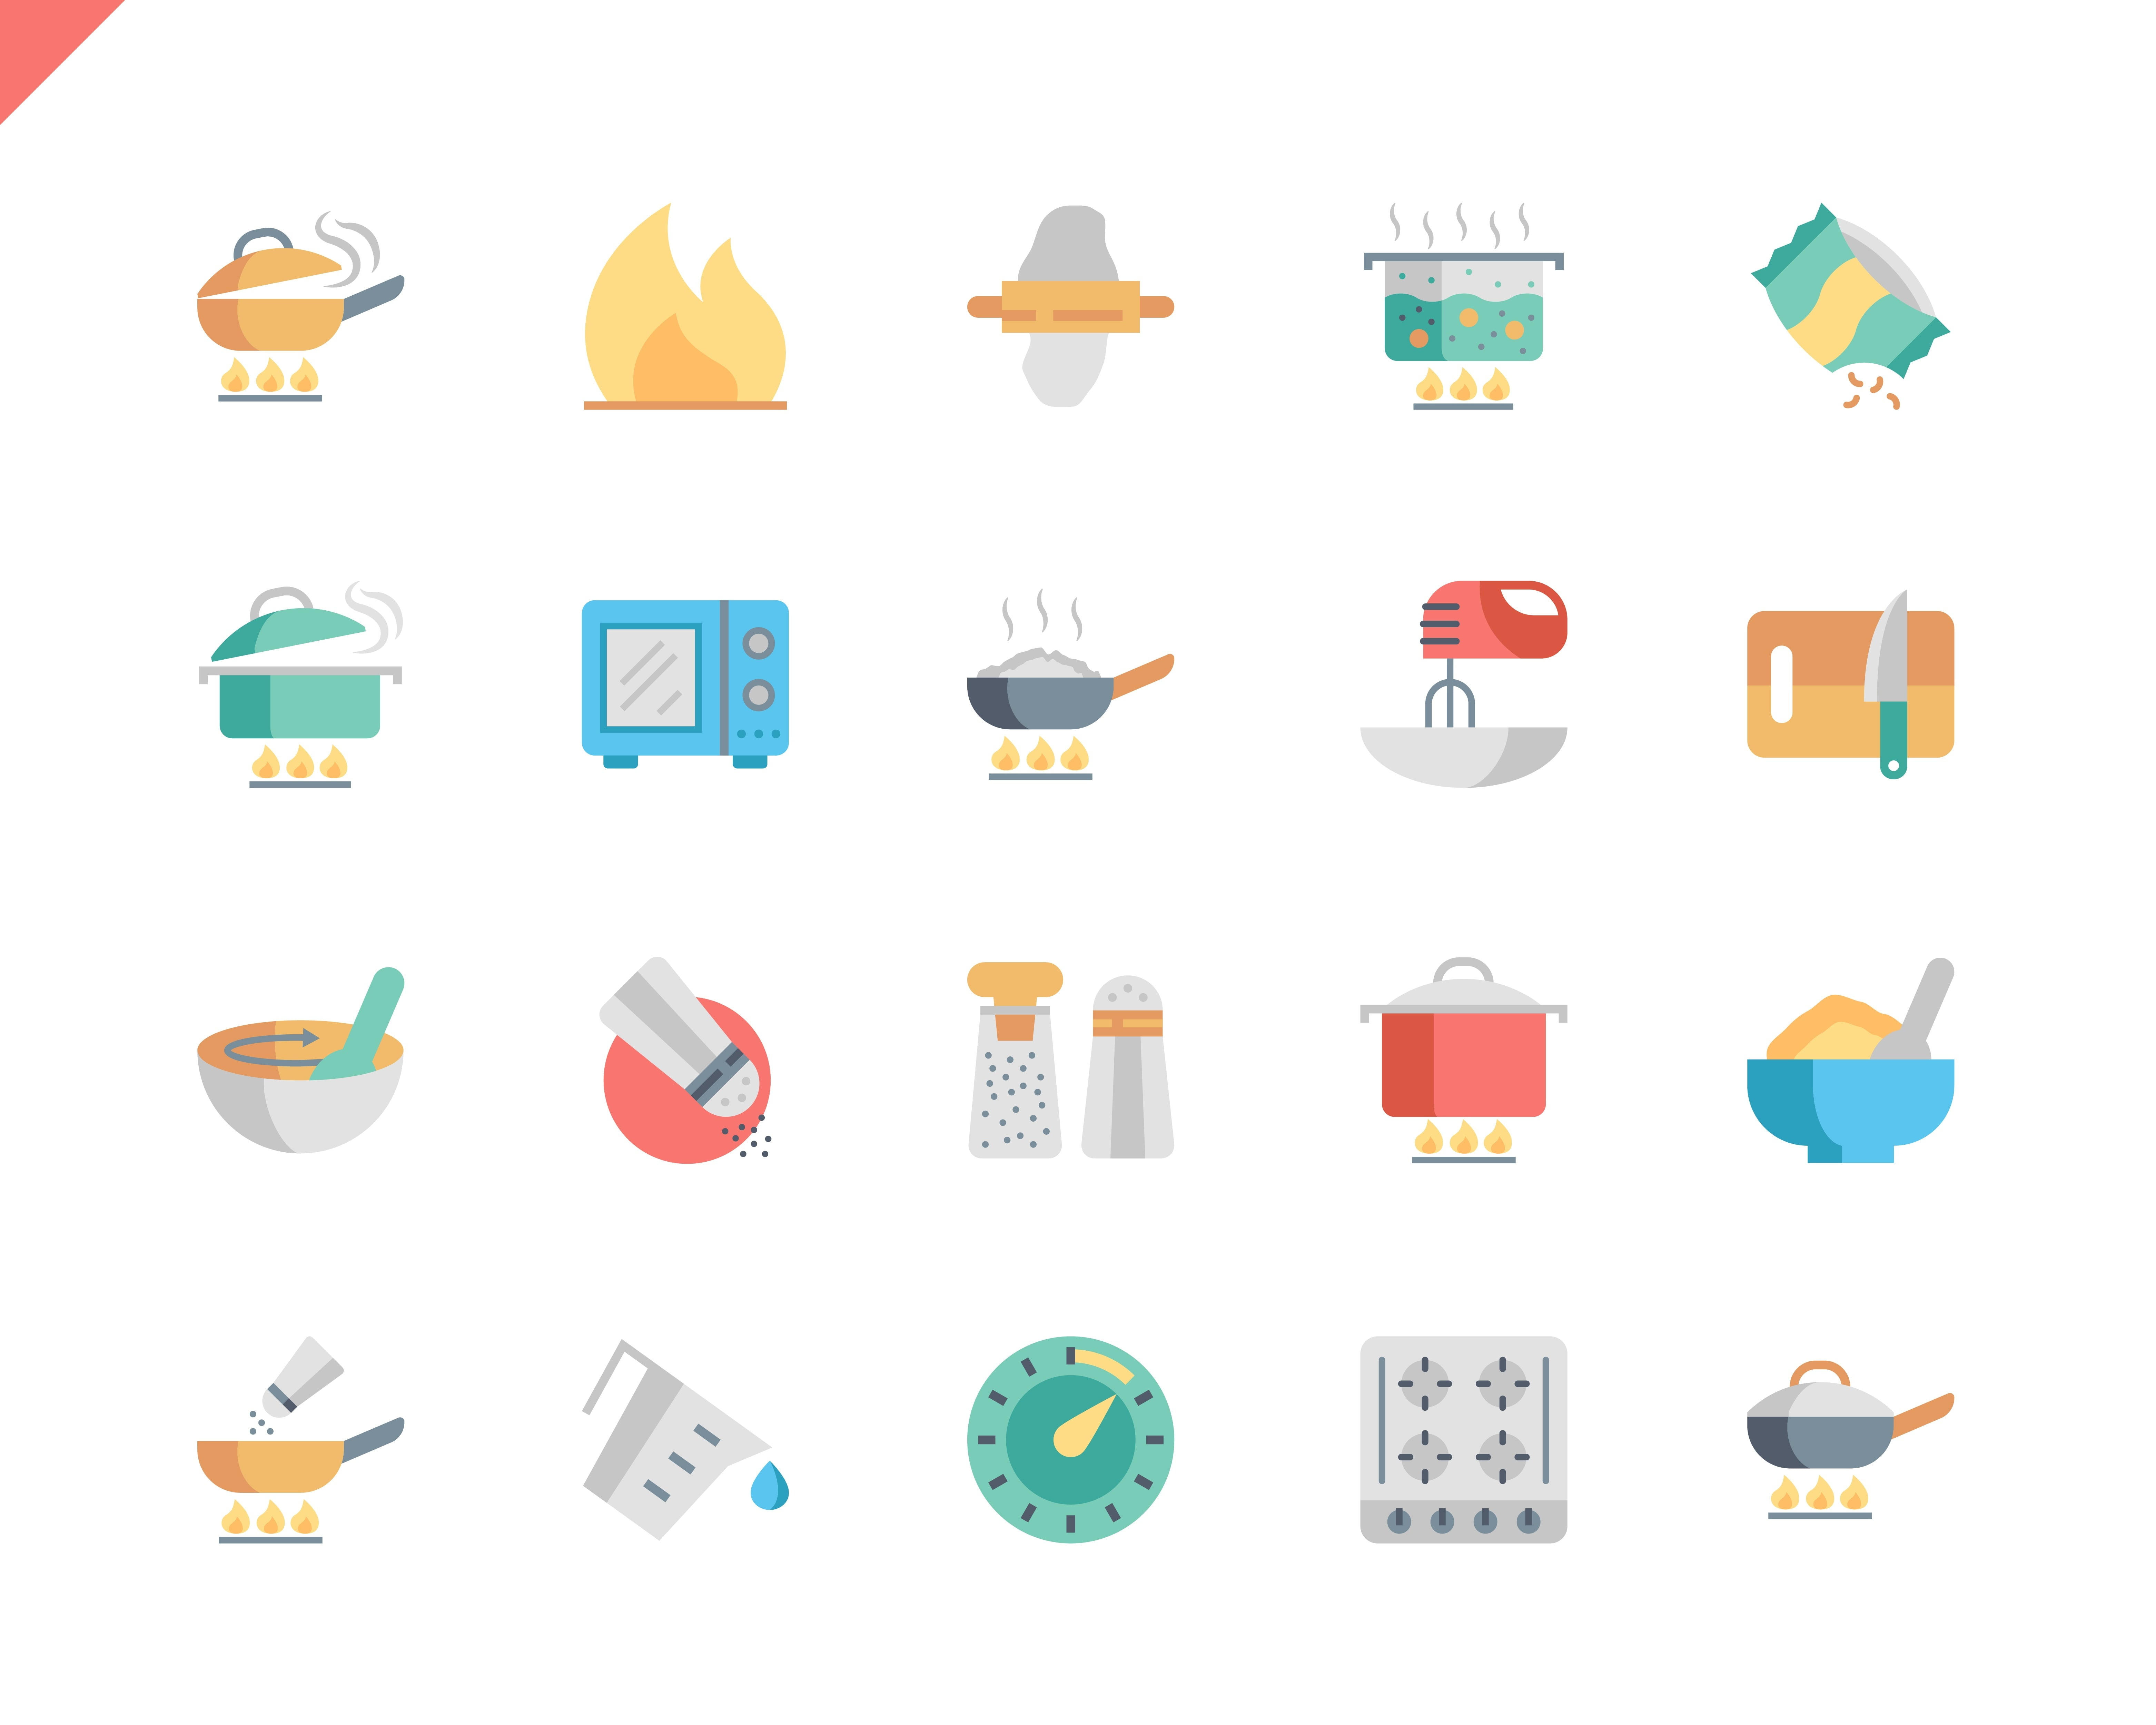 Simple Set Cooking Flat Icons for Website and Mobile Apps. Contains such Icons as Food, Boiling, Flavoring, Saucepan, Bake, Blending. 48x48 Pixel Perfect. Vector illustration.